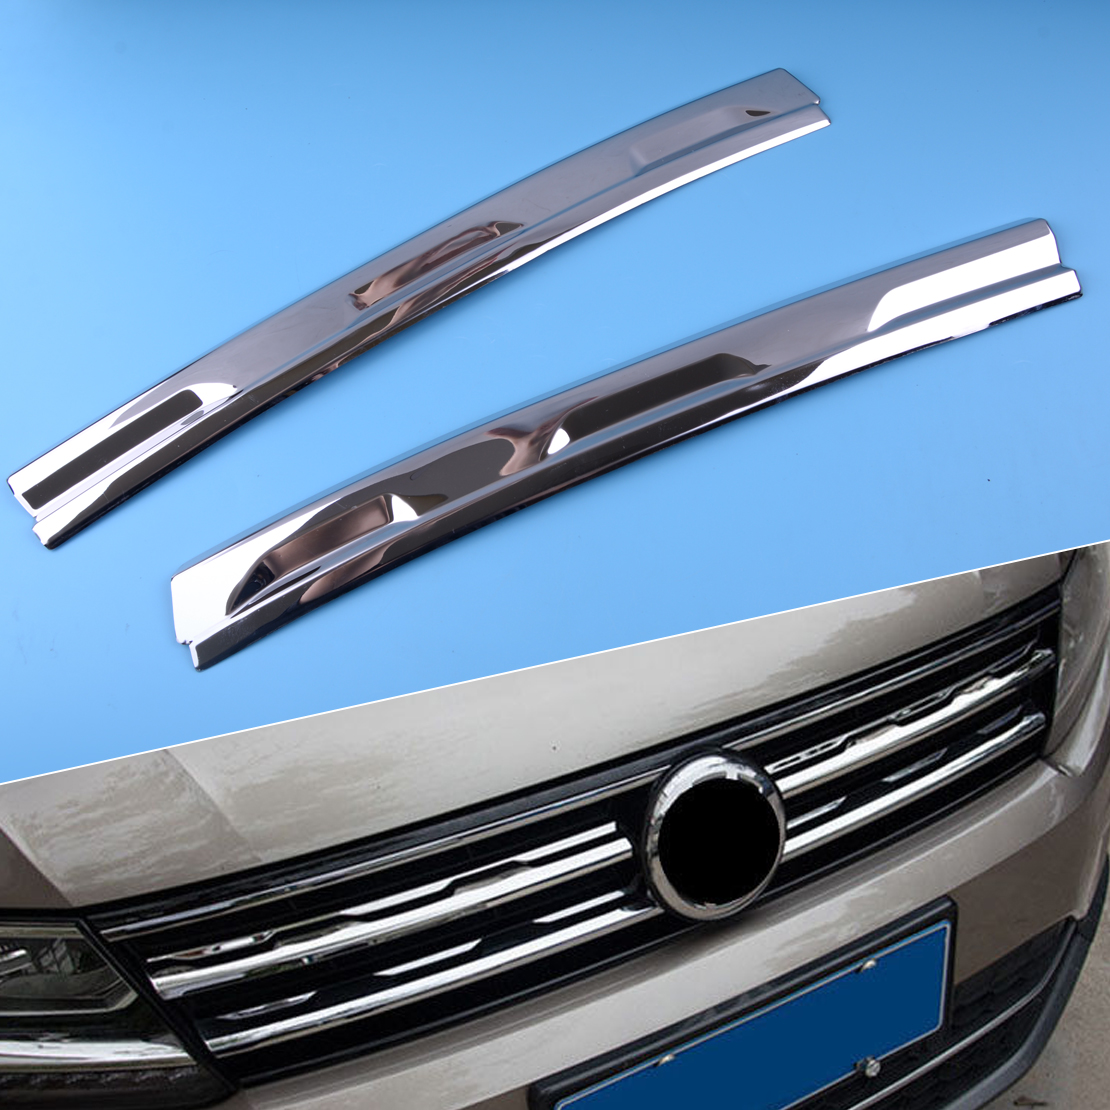 DWCX Silver Stainless Steel Front Mesh Grill Grille Cover Trim Molding Garnish fit for <font><b>Volkswagen</b></font> <font><b>Tiguan</b></font> MK2 2016 2017 2018 <font><b>2019</b></font> image